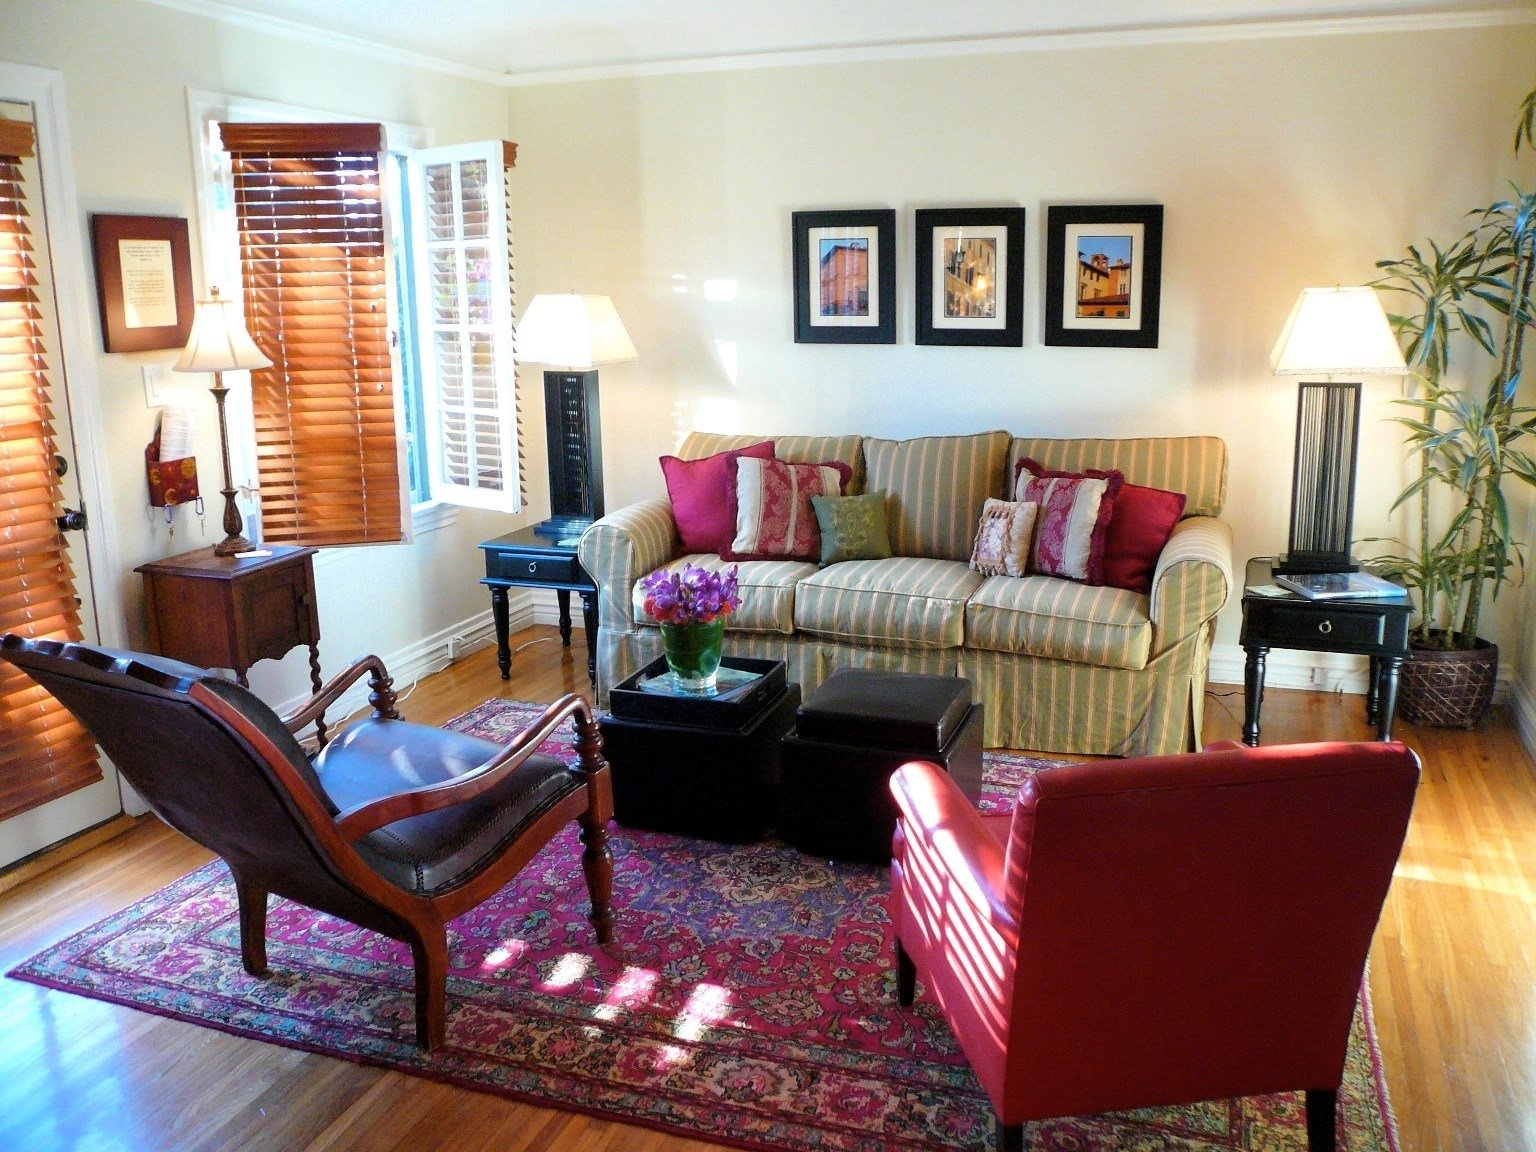 10 Stylish Living Room Ideas On A Budget exciting small living room ideas on a budget exquisite creative cozy